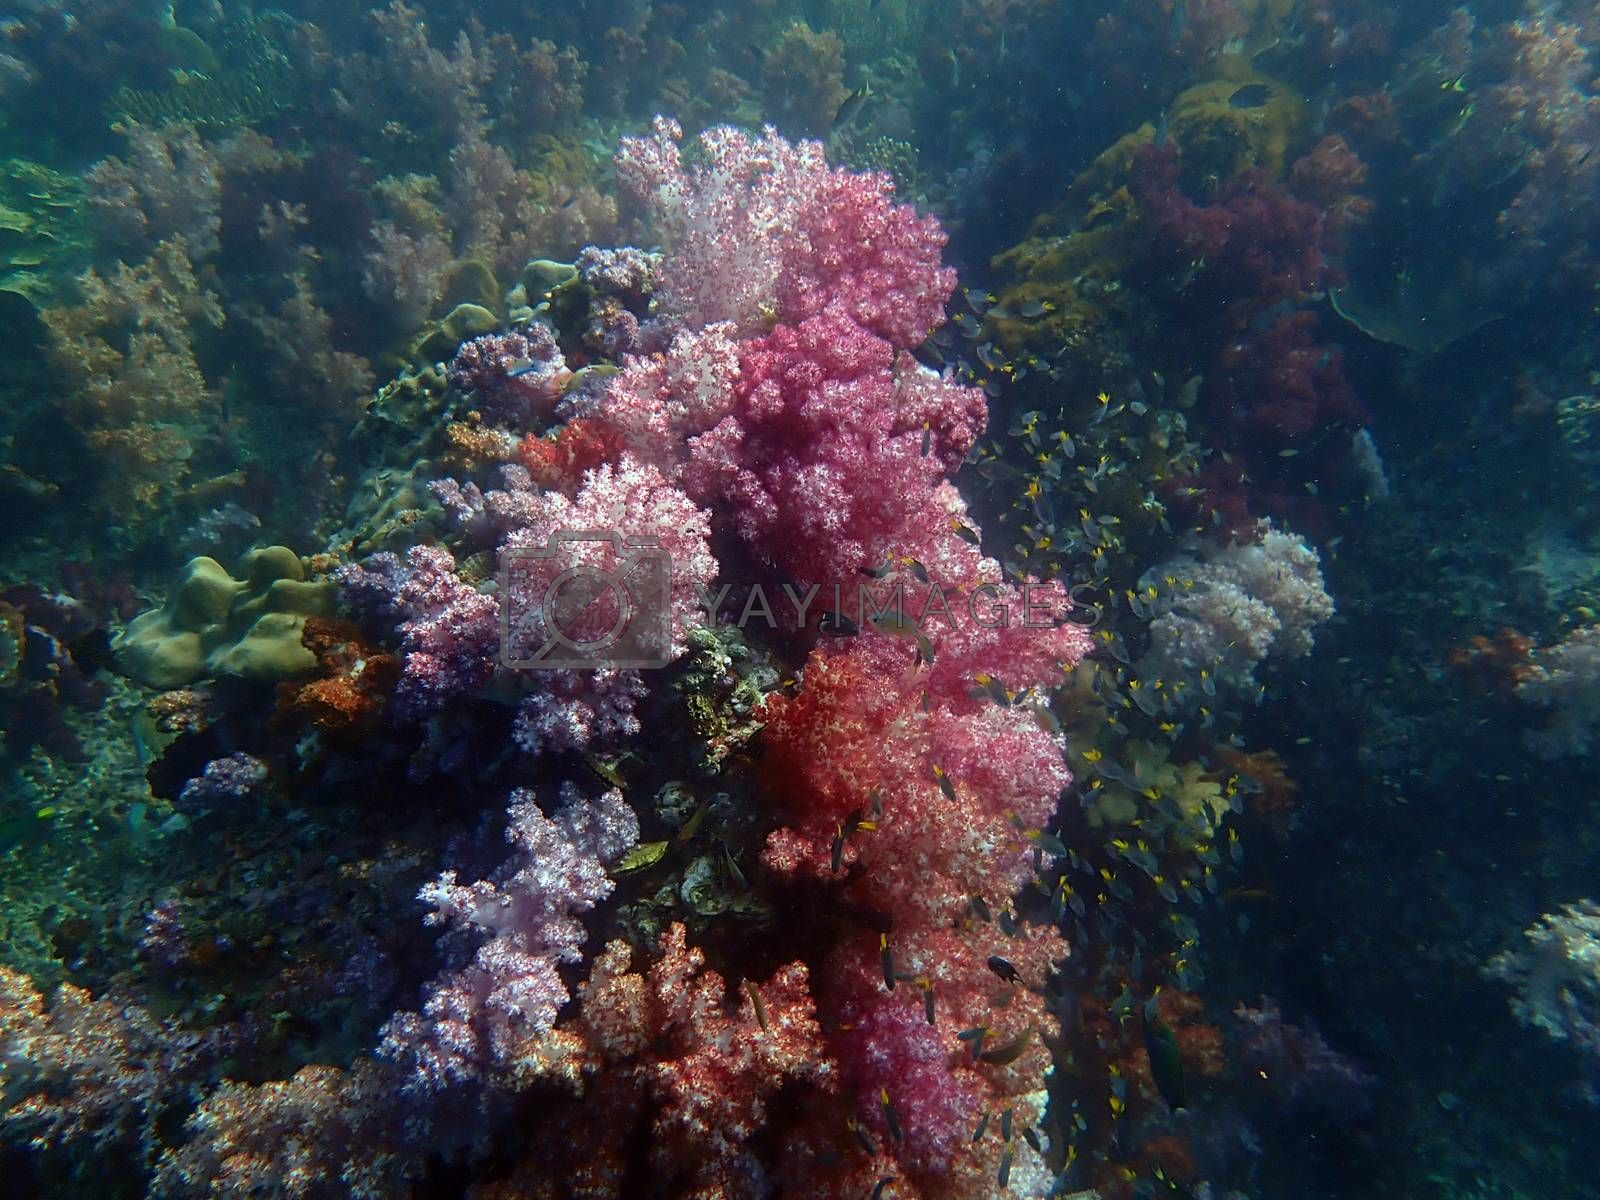 Colorful coral reef with fish at Lipe Island, Andaman Sea, Indian Ocean, Thailand, nature photography